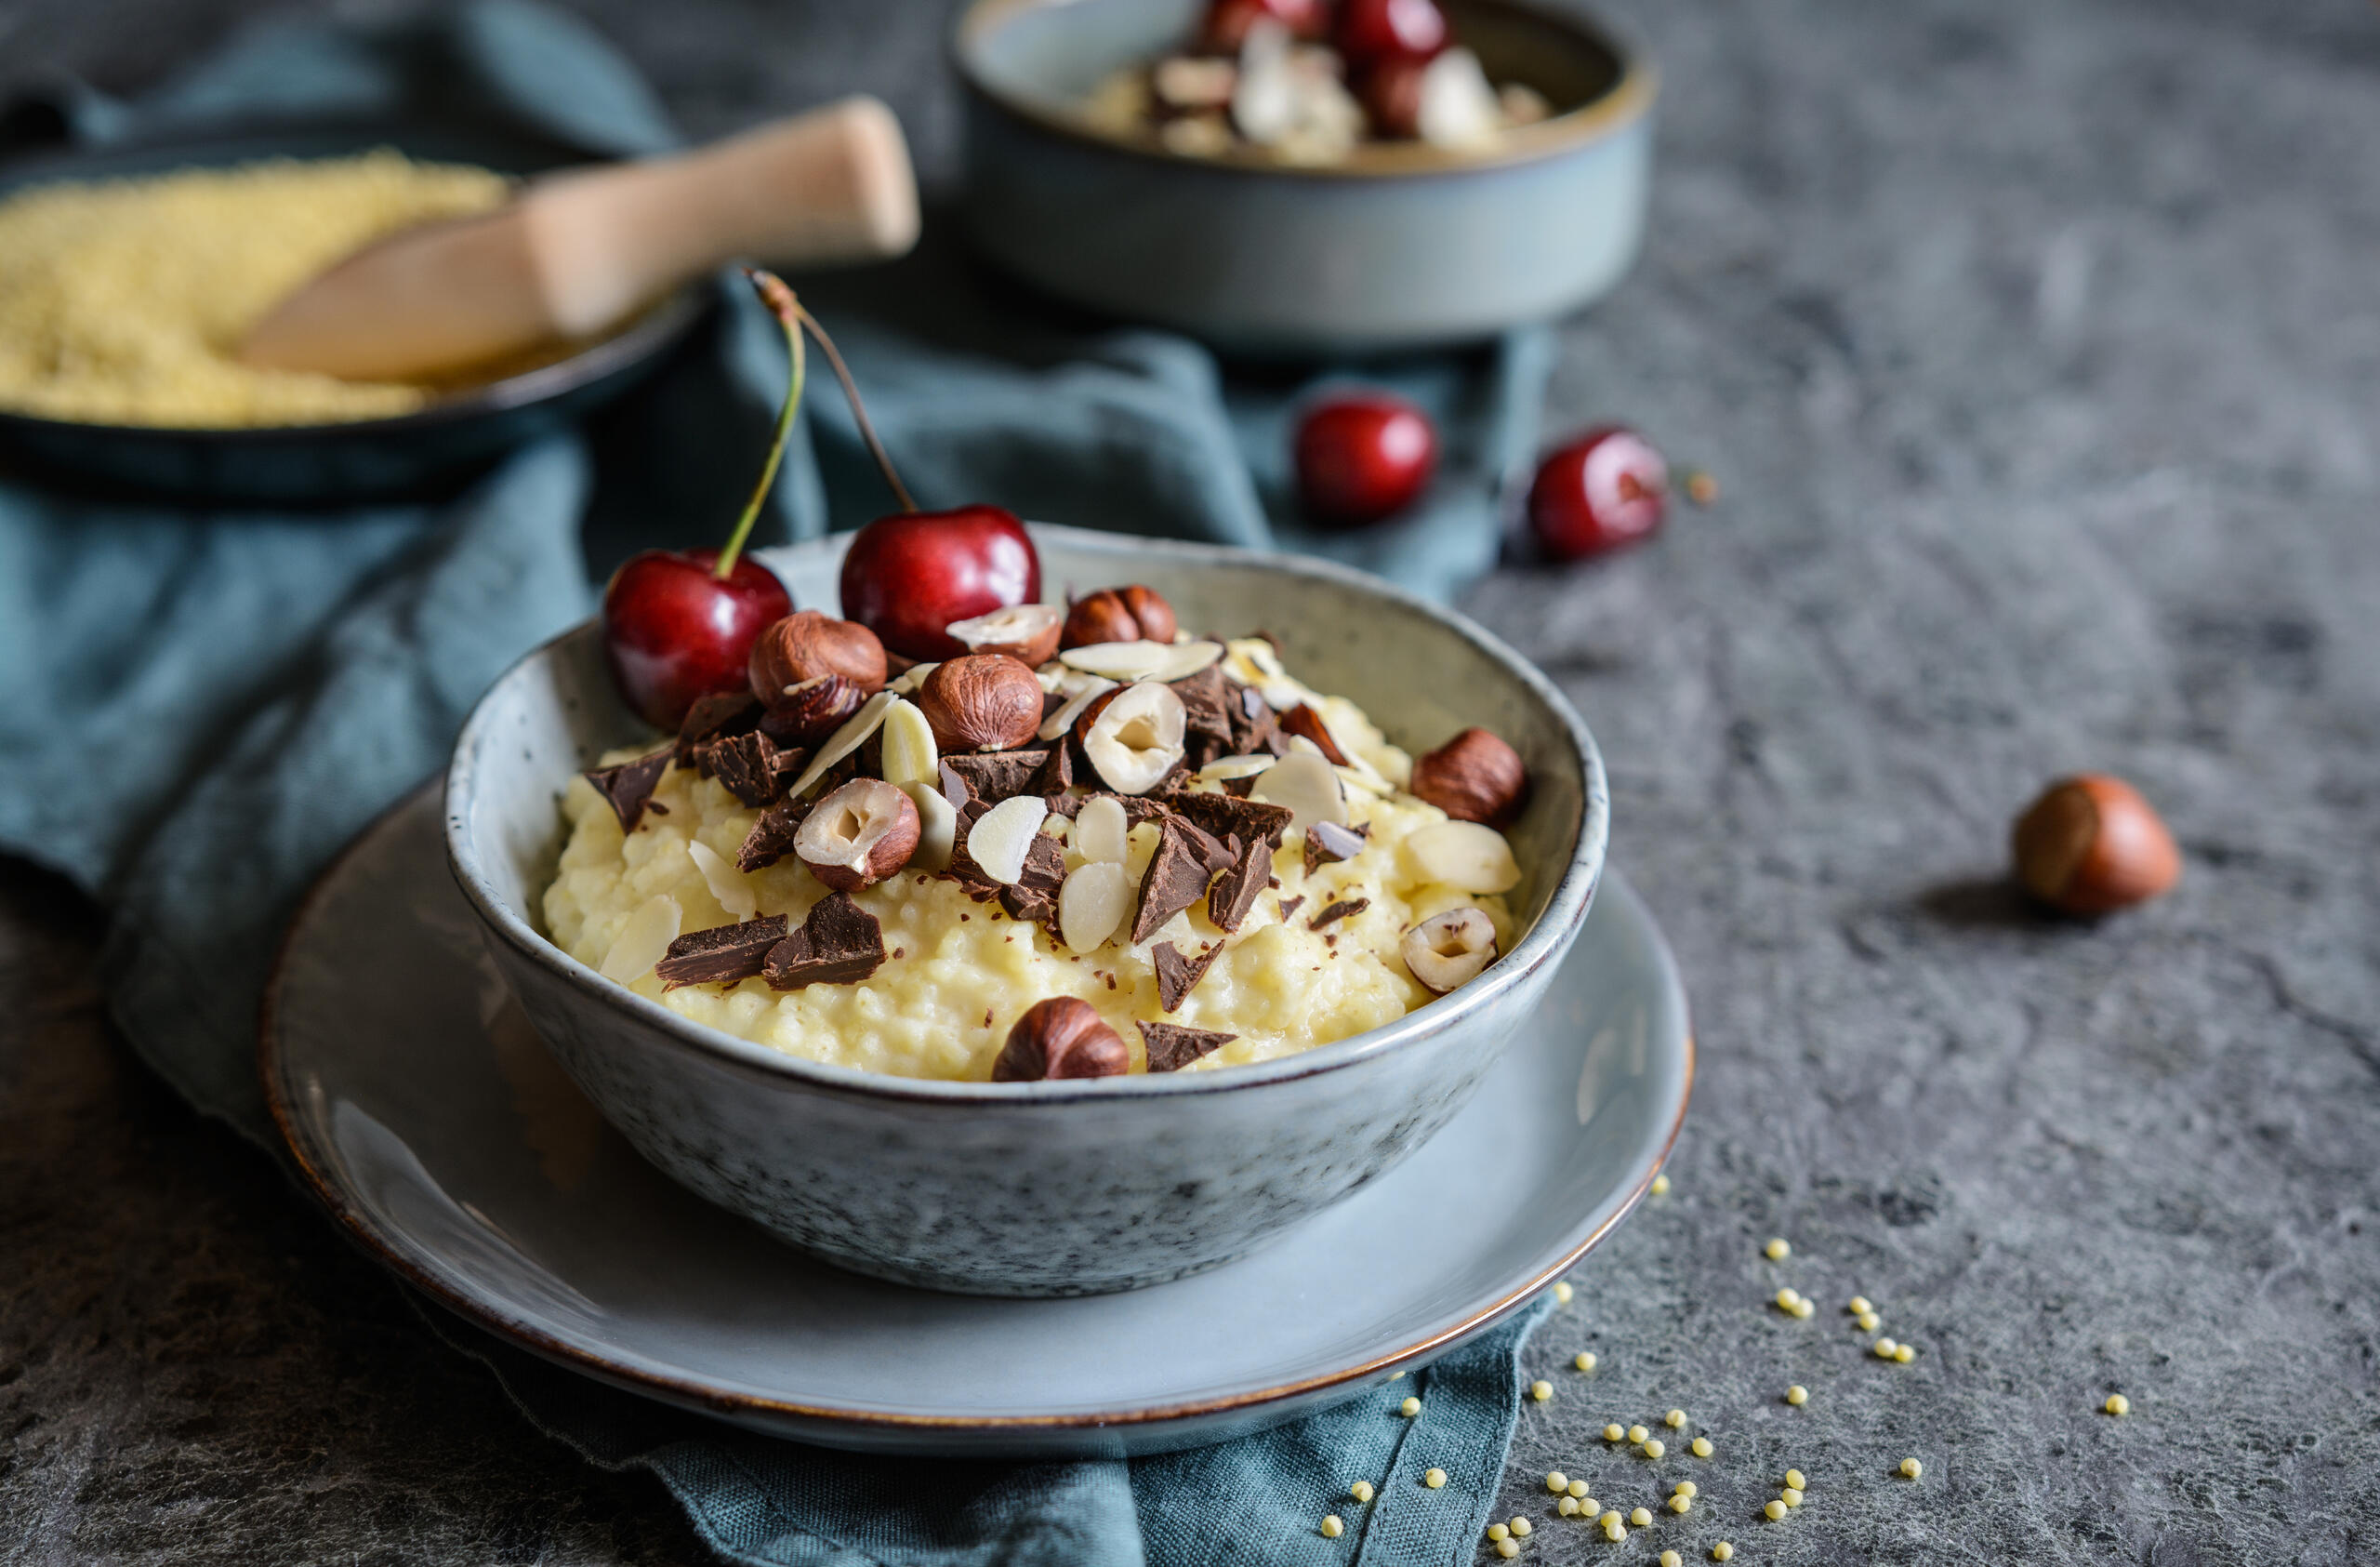 Nutritious millet porridge topped with chocolate pieces, hazelnuts, almond slices and cherry. Credit: NoirChocolate.